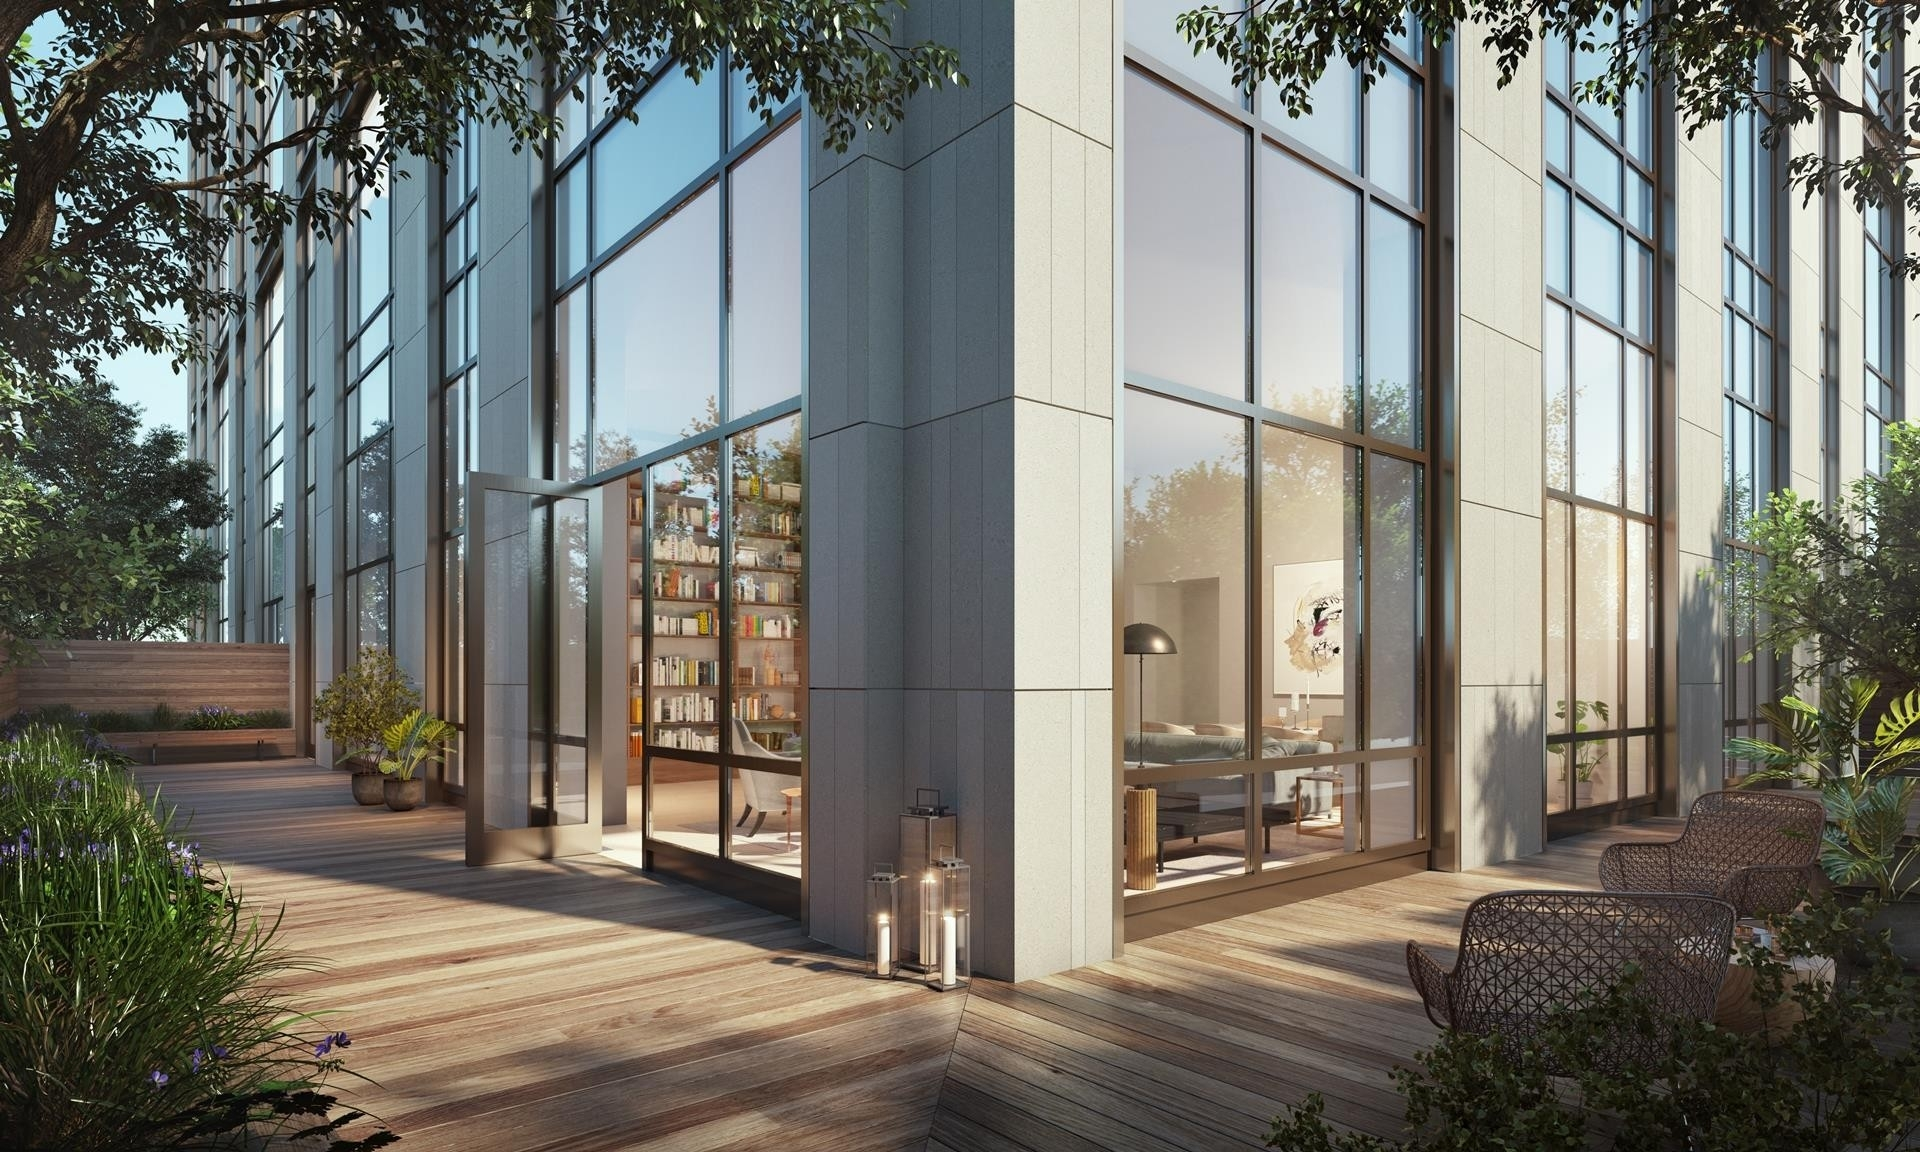 Condominium for Sale at Gramercy Square, 215 East 19th St, 1C Gramercy Park, New York, NY 10003